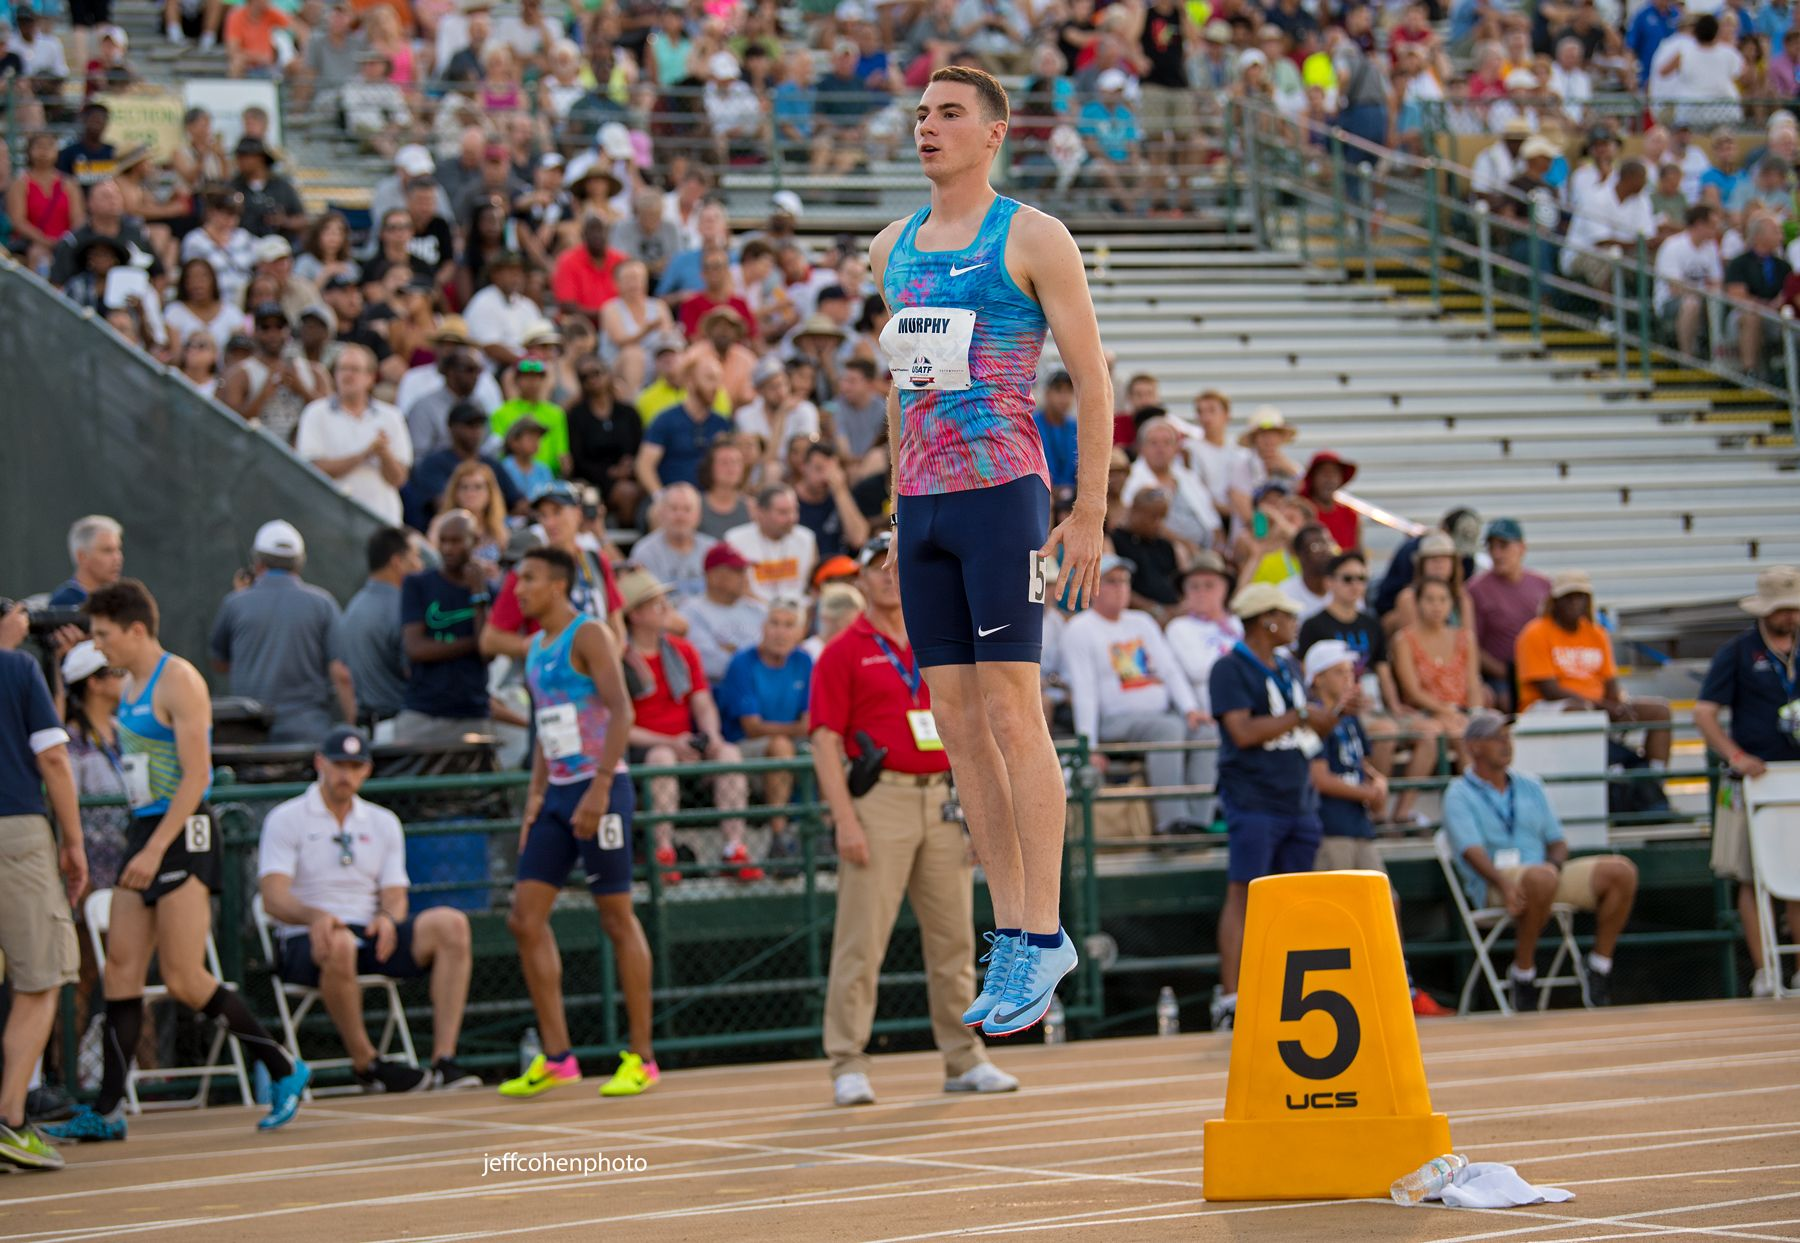 2017-usatf-outdoor-champs-day-2-murphy-800m-float--jeff-cohen-photo--3212-web.jpg